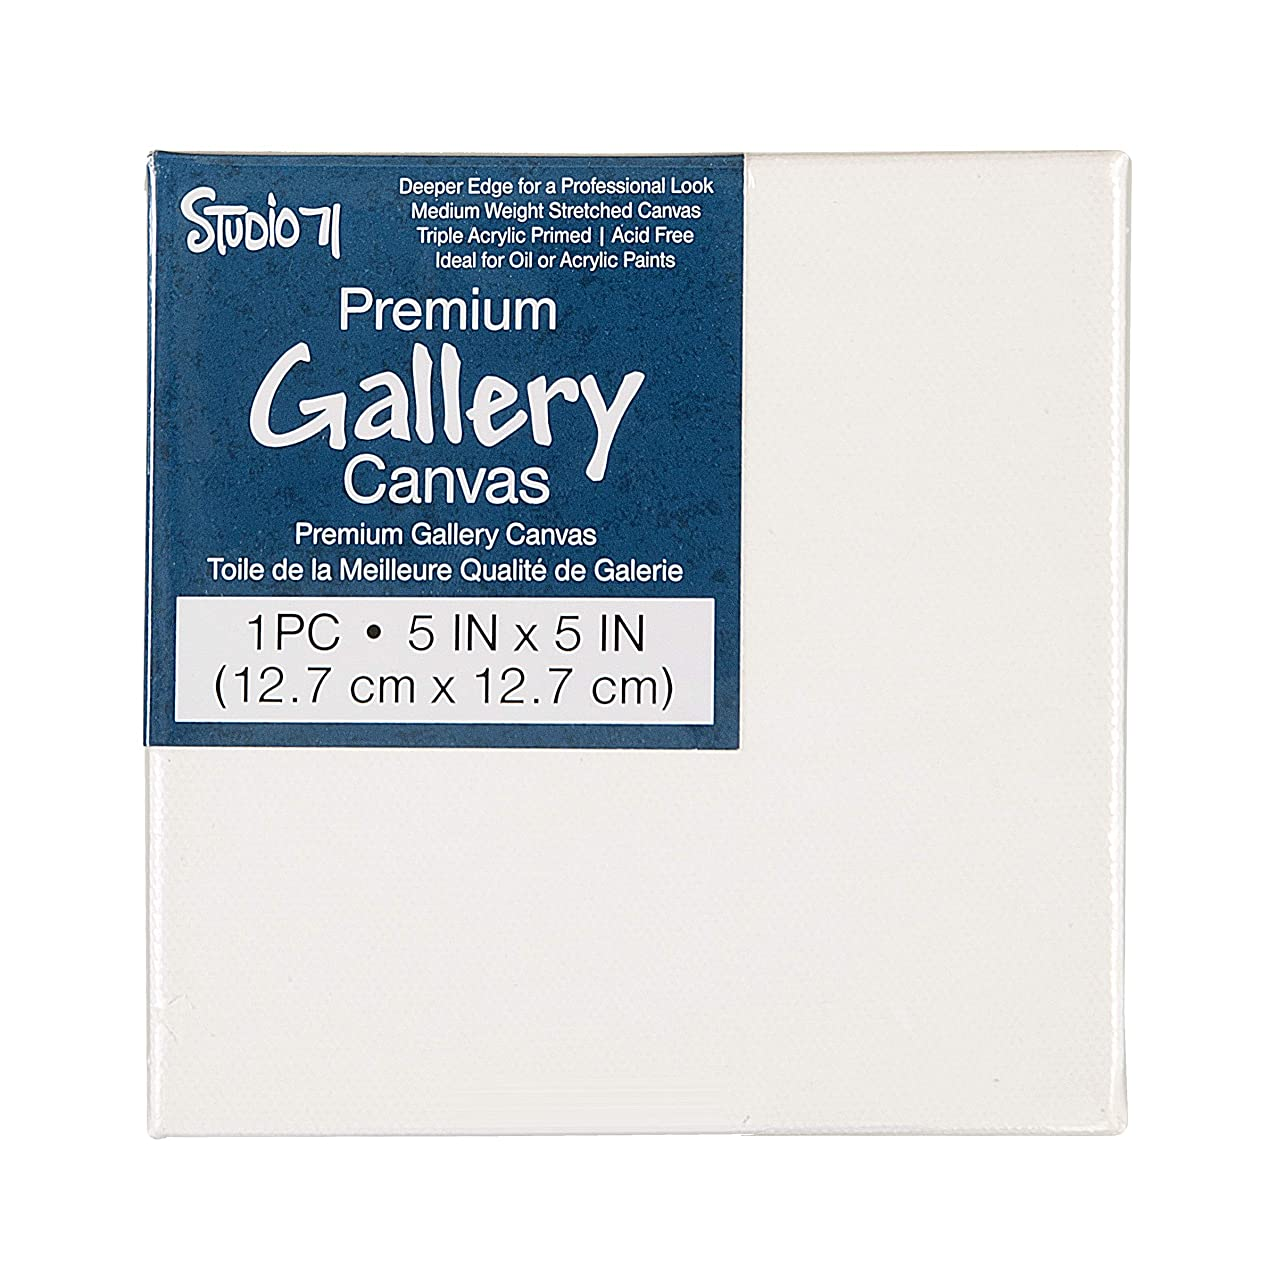 Darice 30063763 Studio 71 Stretched Gallery, 5 x 5 inches Canvas, White